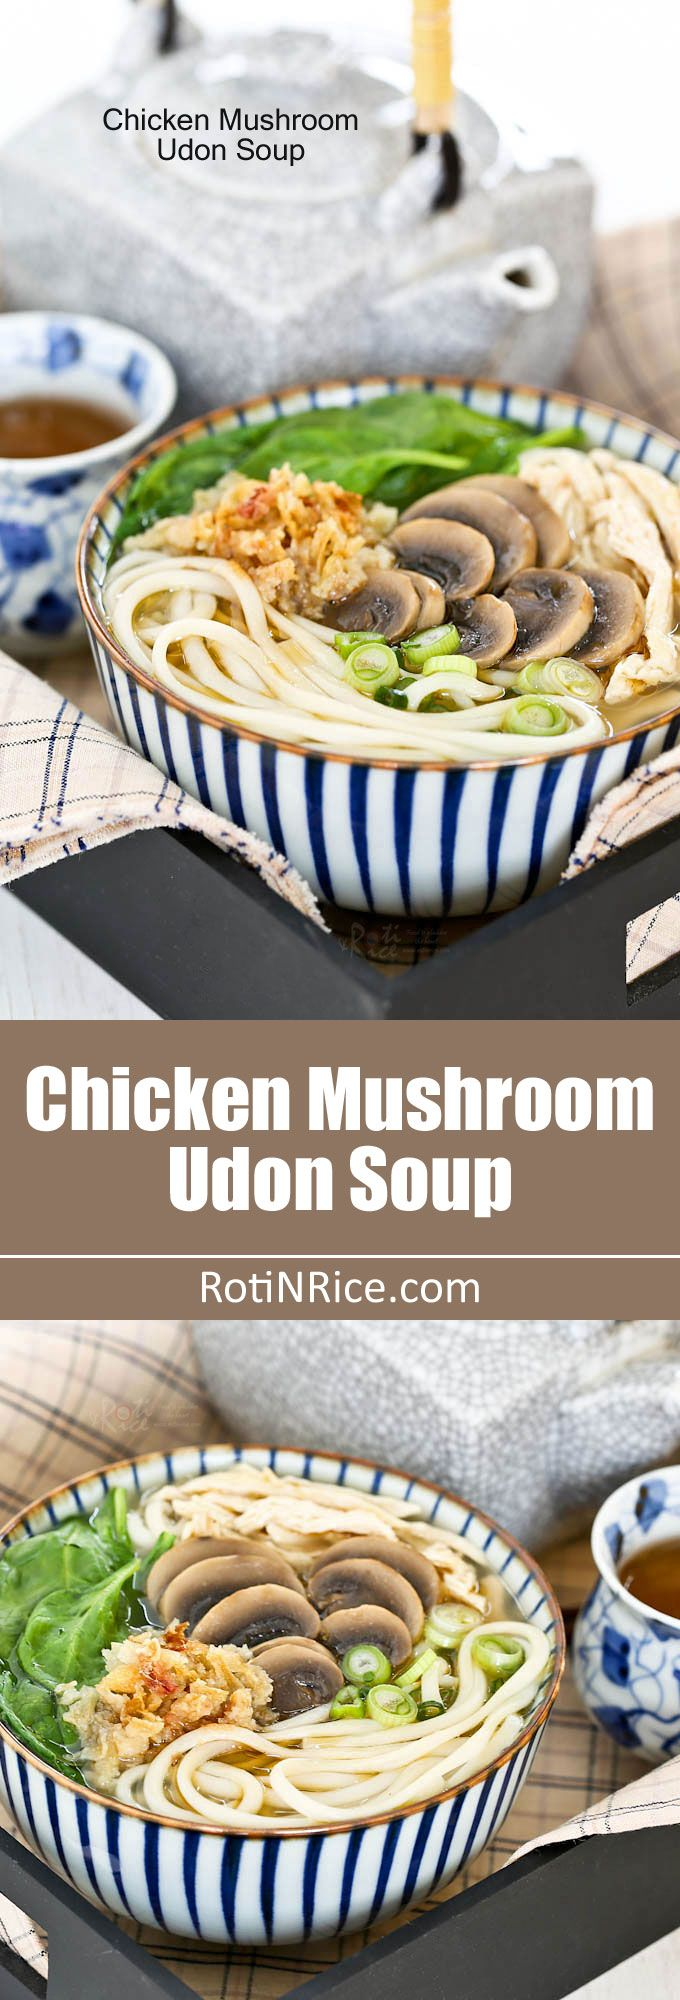 Quick and easy Chicken Mushroom Udon Soup with minimum prep work. It is light, tasty, and satisfying. Perfect for lunch!   RotiNRice.com